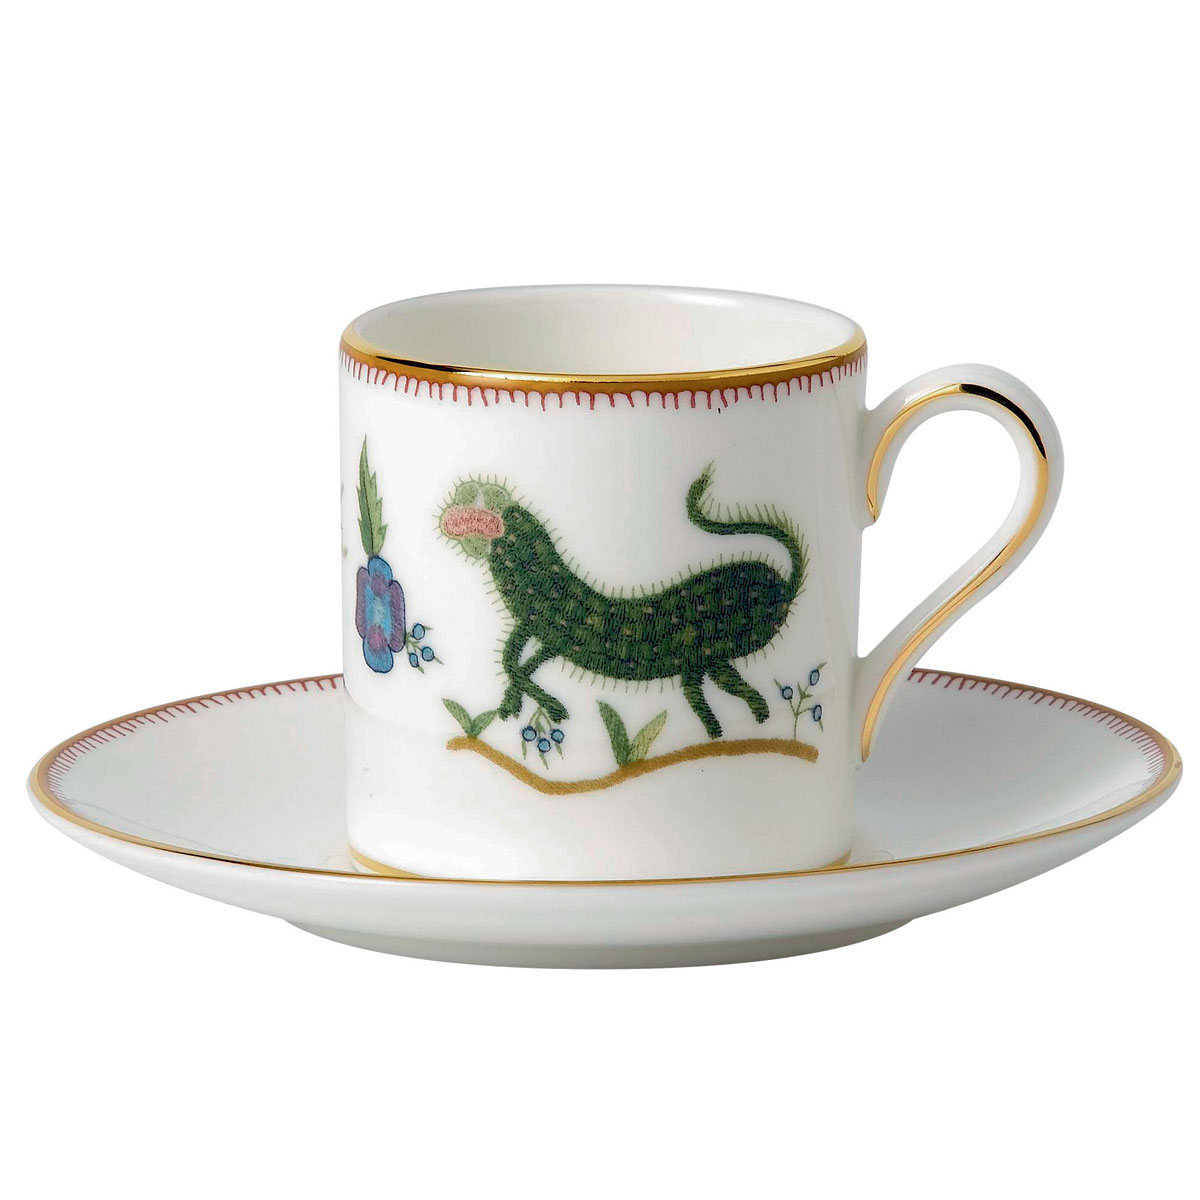 Wedgwood Mythical Creatures Coffee Cup and Saucer